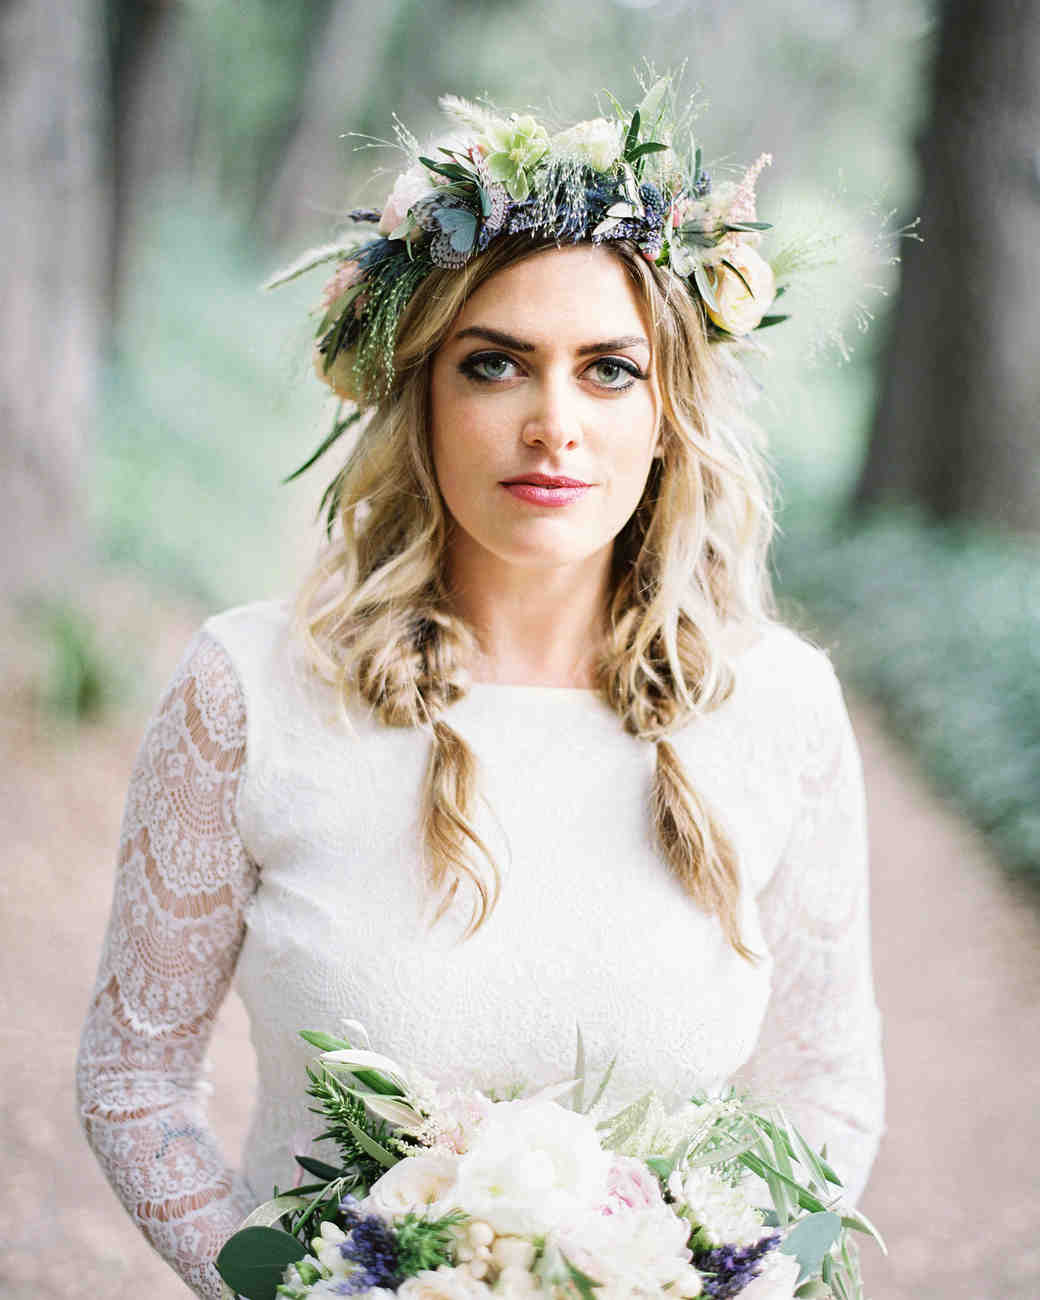 Wedding Hairstyle Crown: An Eclectic, Outdoor Wedding In The Escondido Mountains